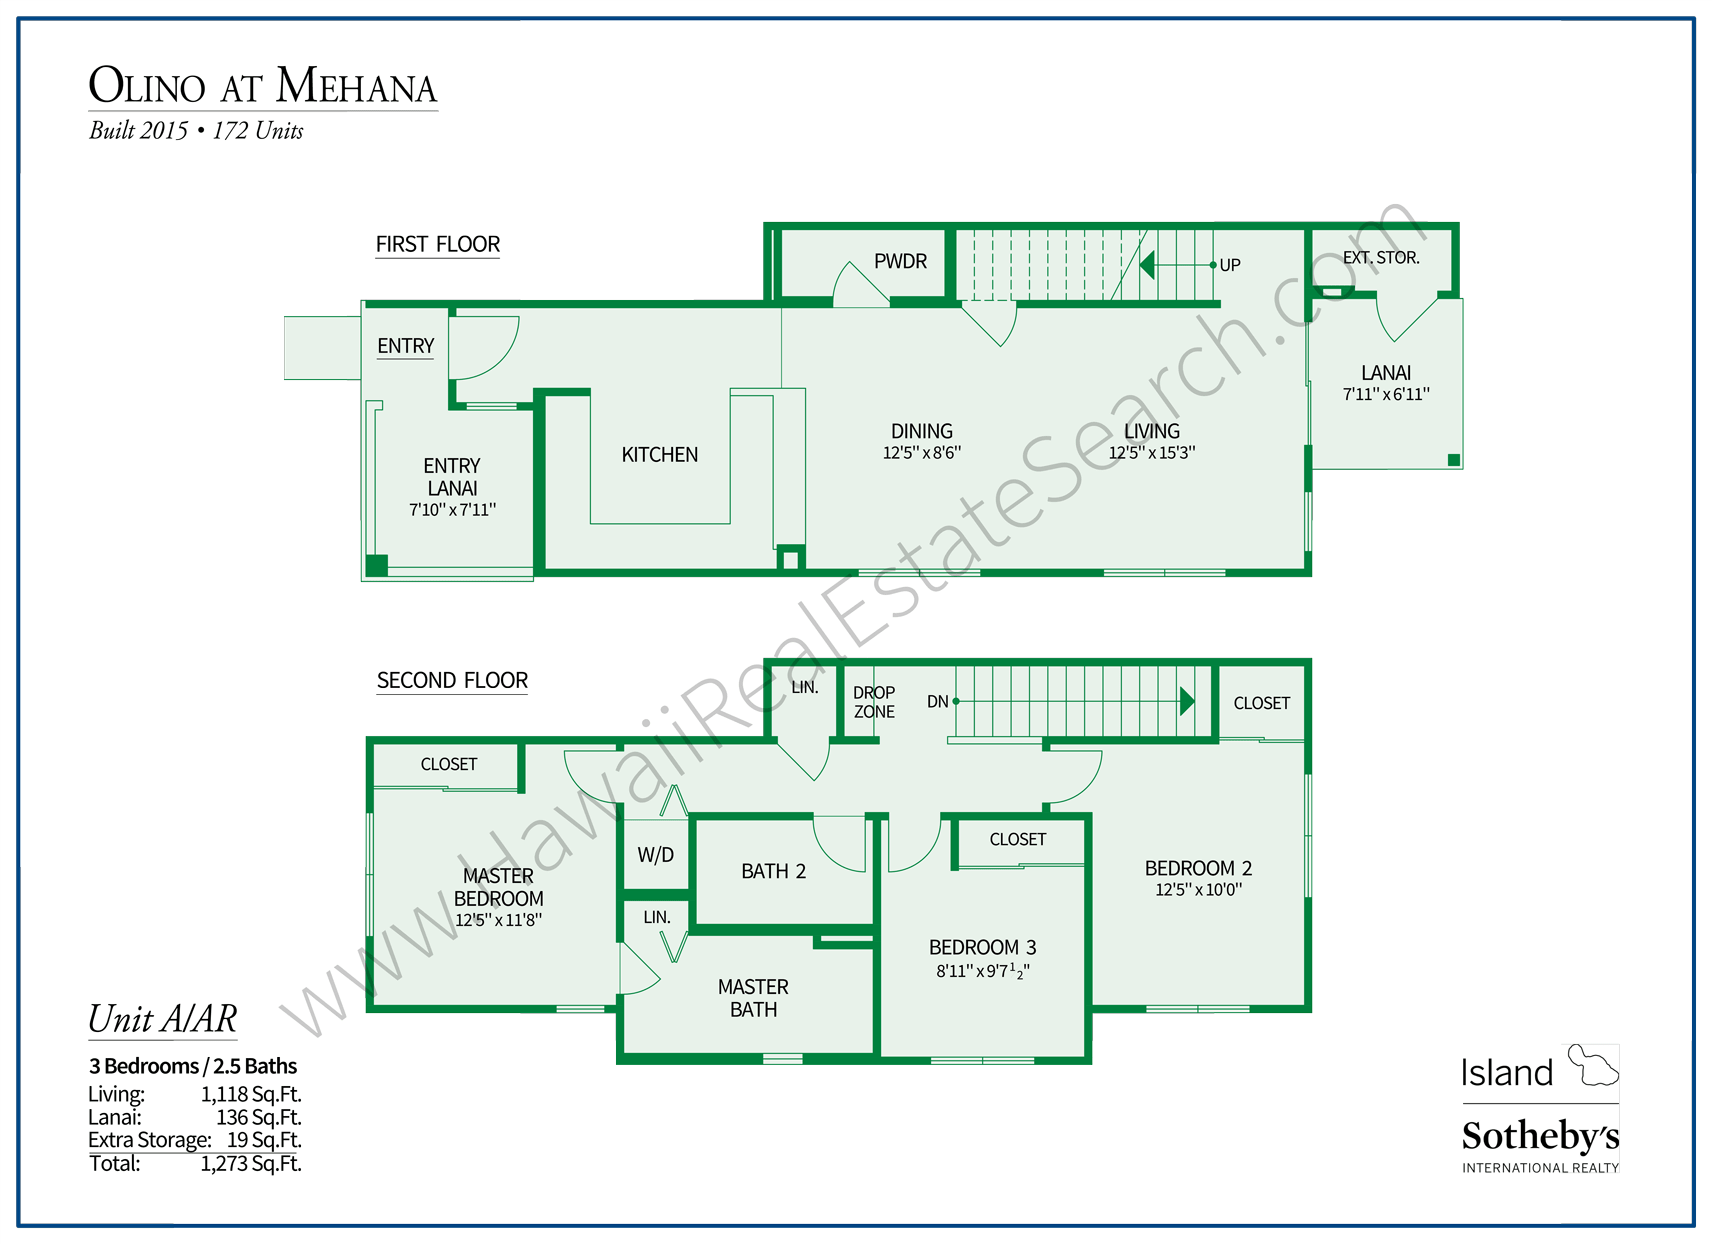 Olino at Mehana Floor Plan